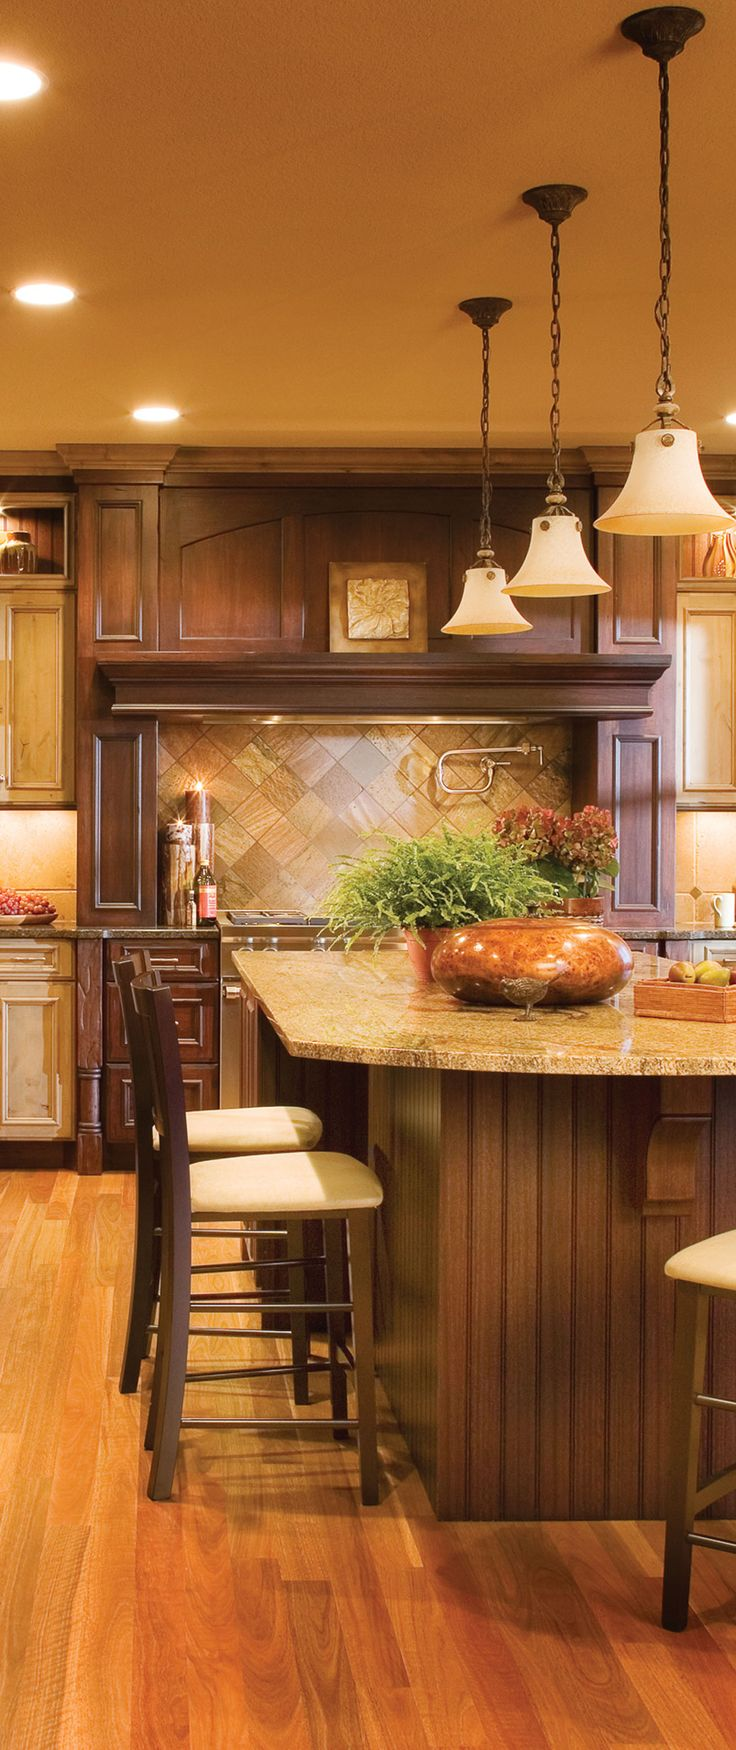 Rustic kitchen design mix 2 different kinds of wood and for Different kitchen designs